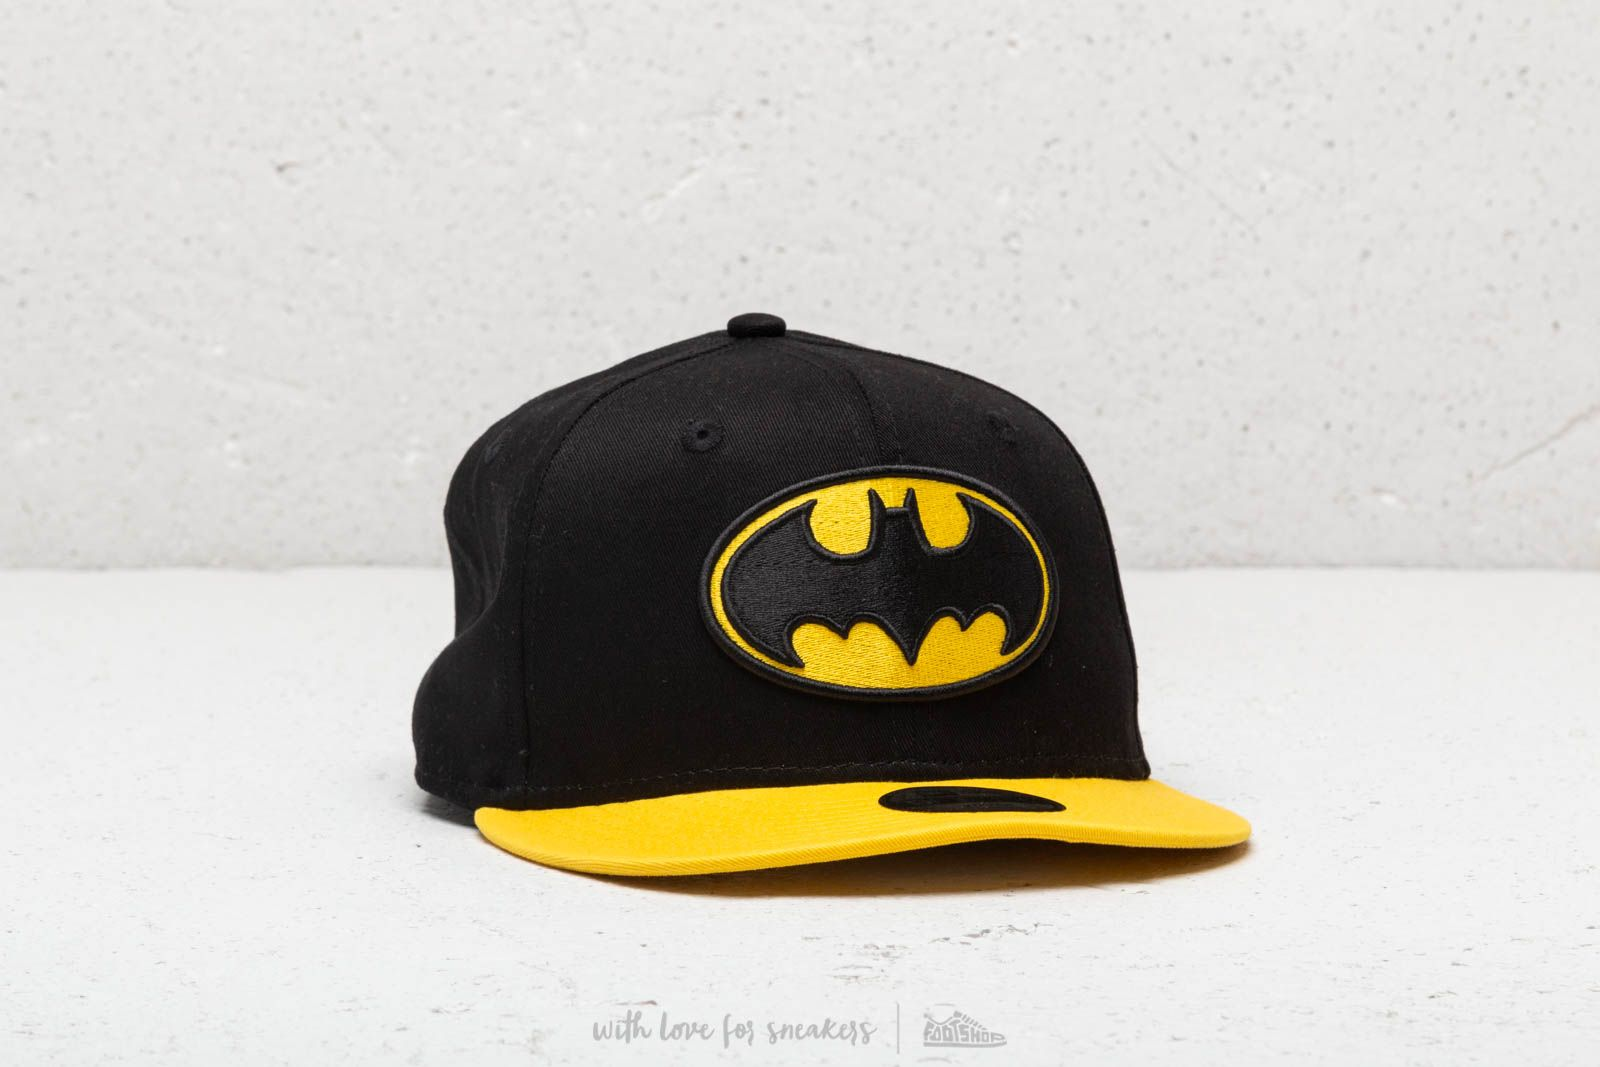 ca5c035b98e New Era Kids Essential Batman Snapback Black  Yellow at a great price  30  buy at